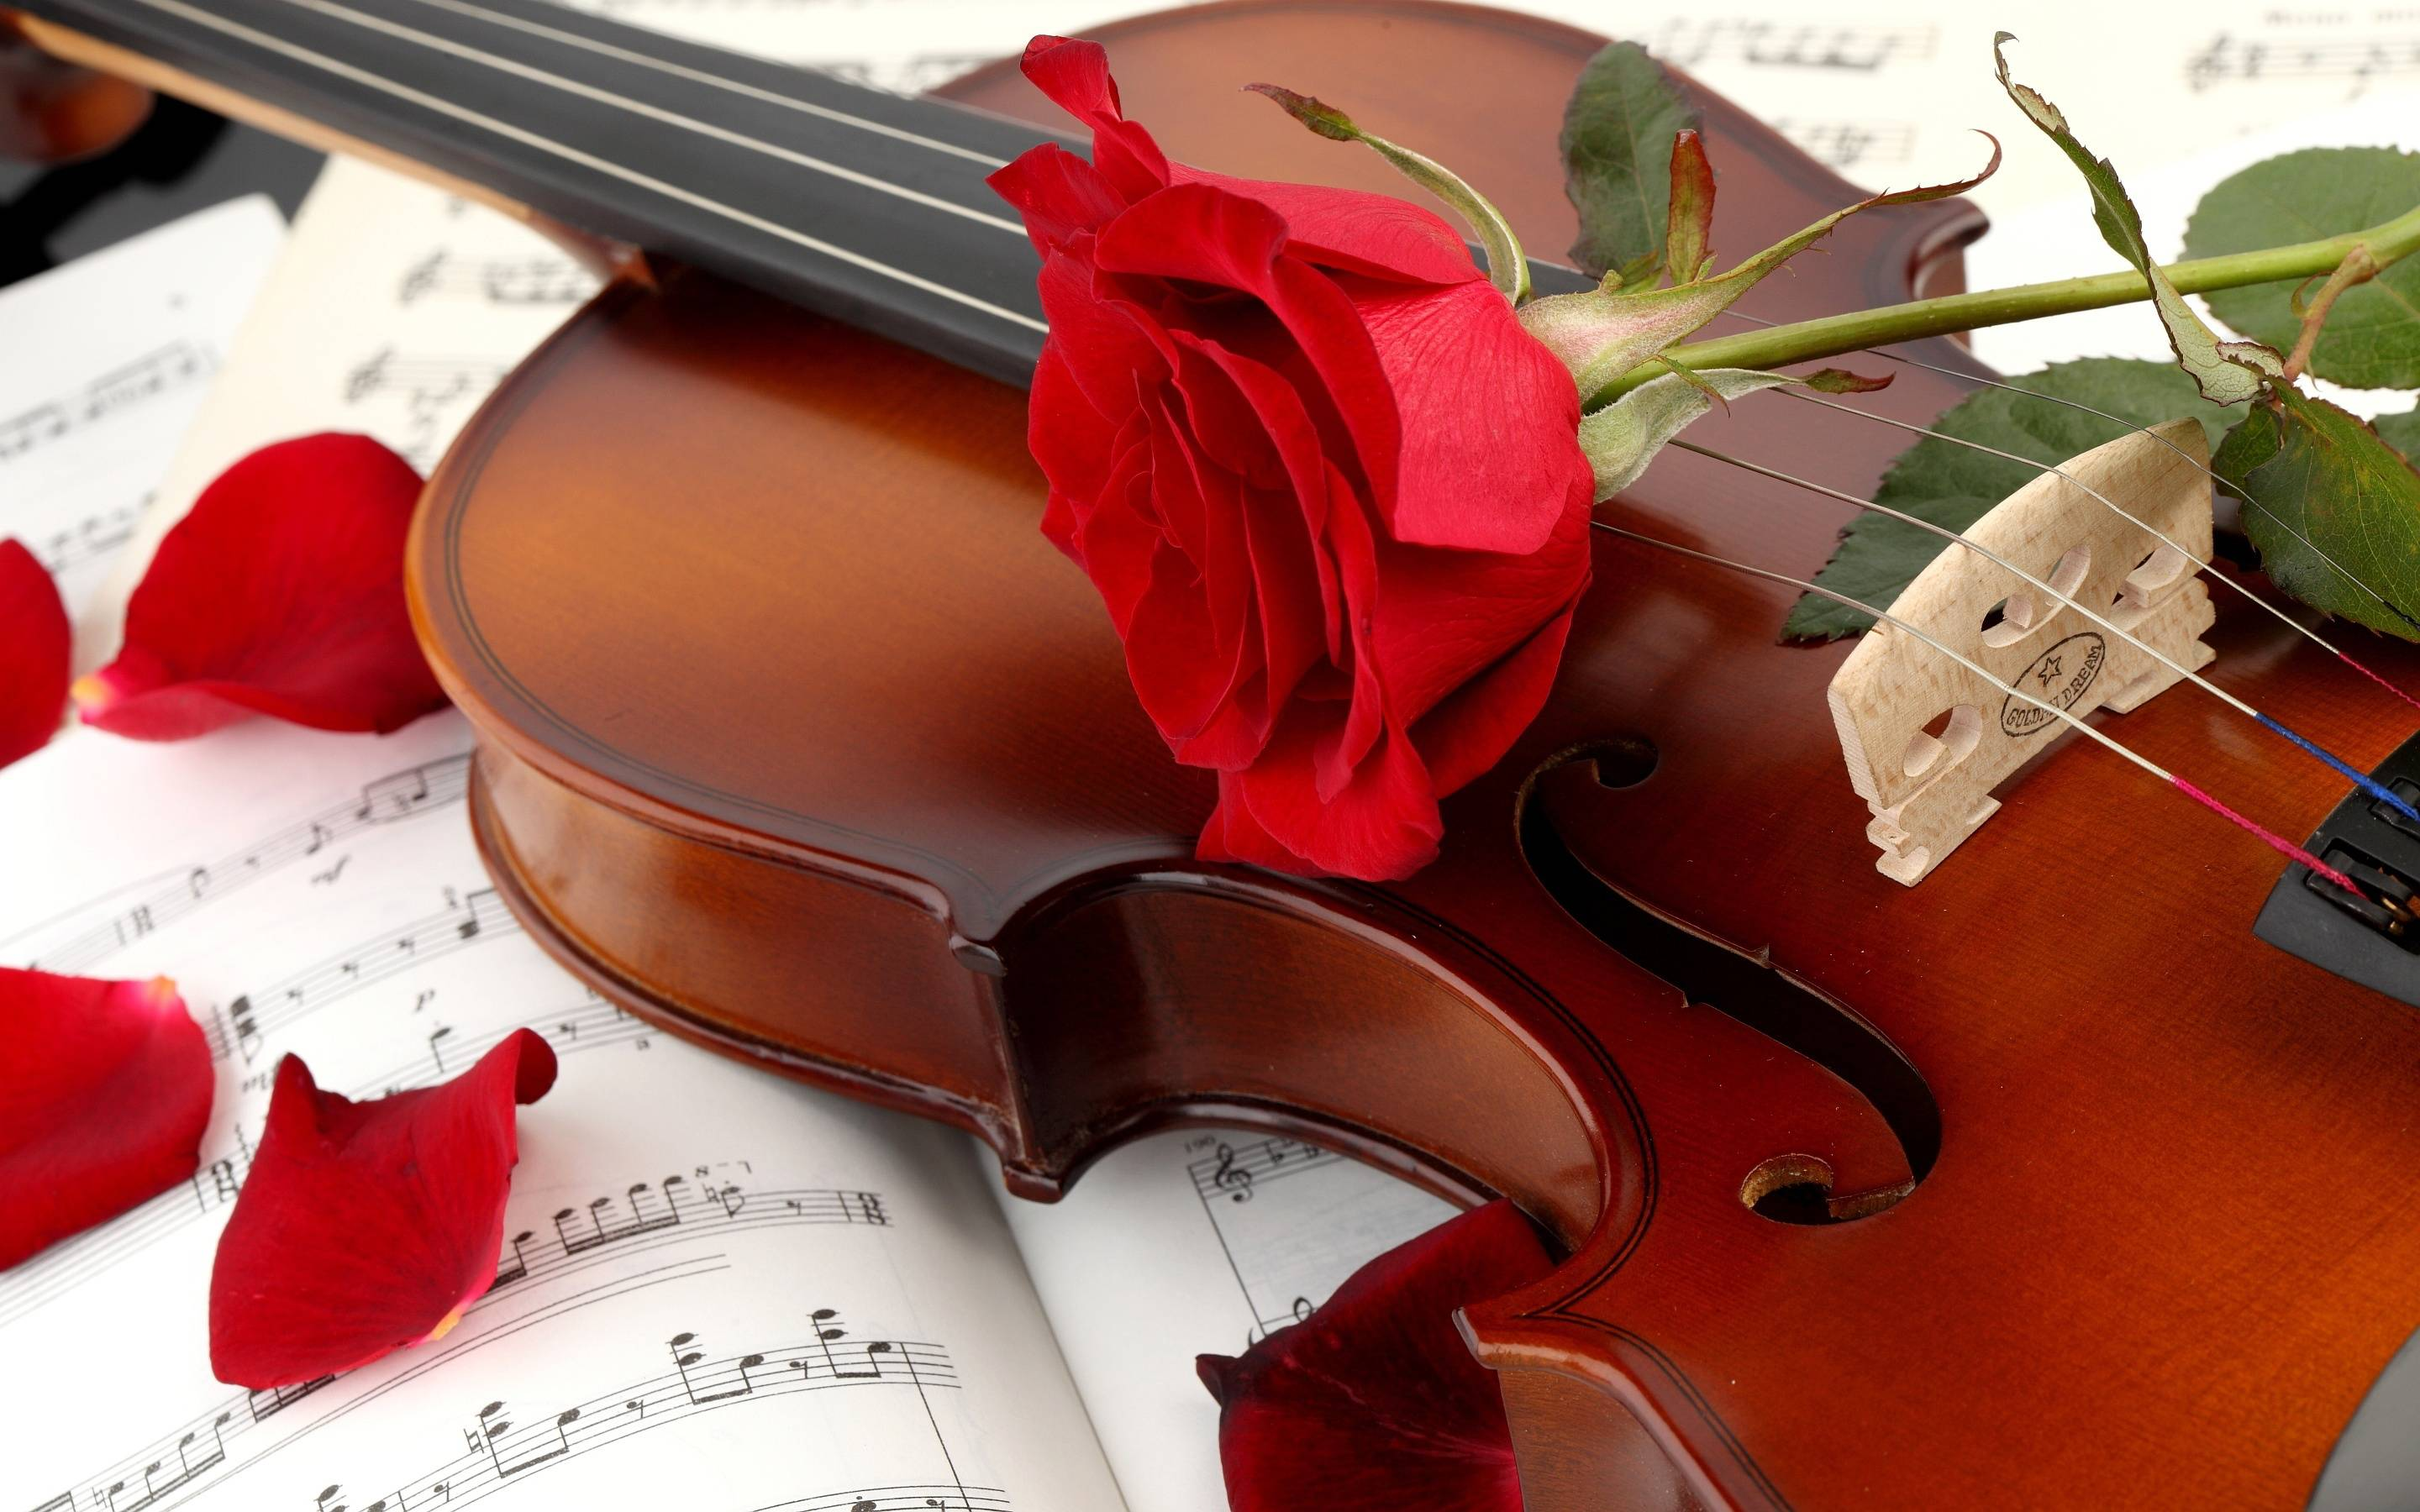 Violin Instrument Music Wallpaper HD #6429 Wallpaper | Wallpaper ...